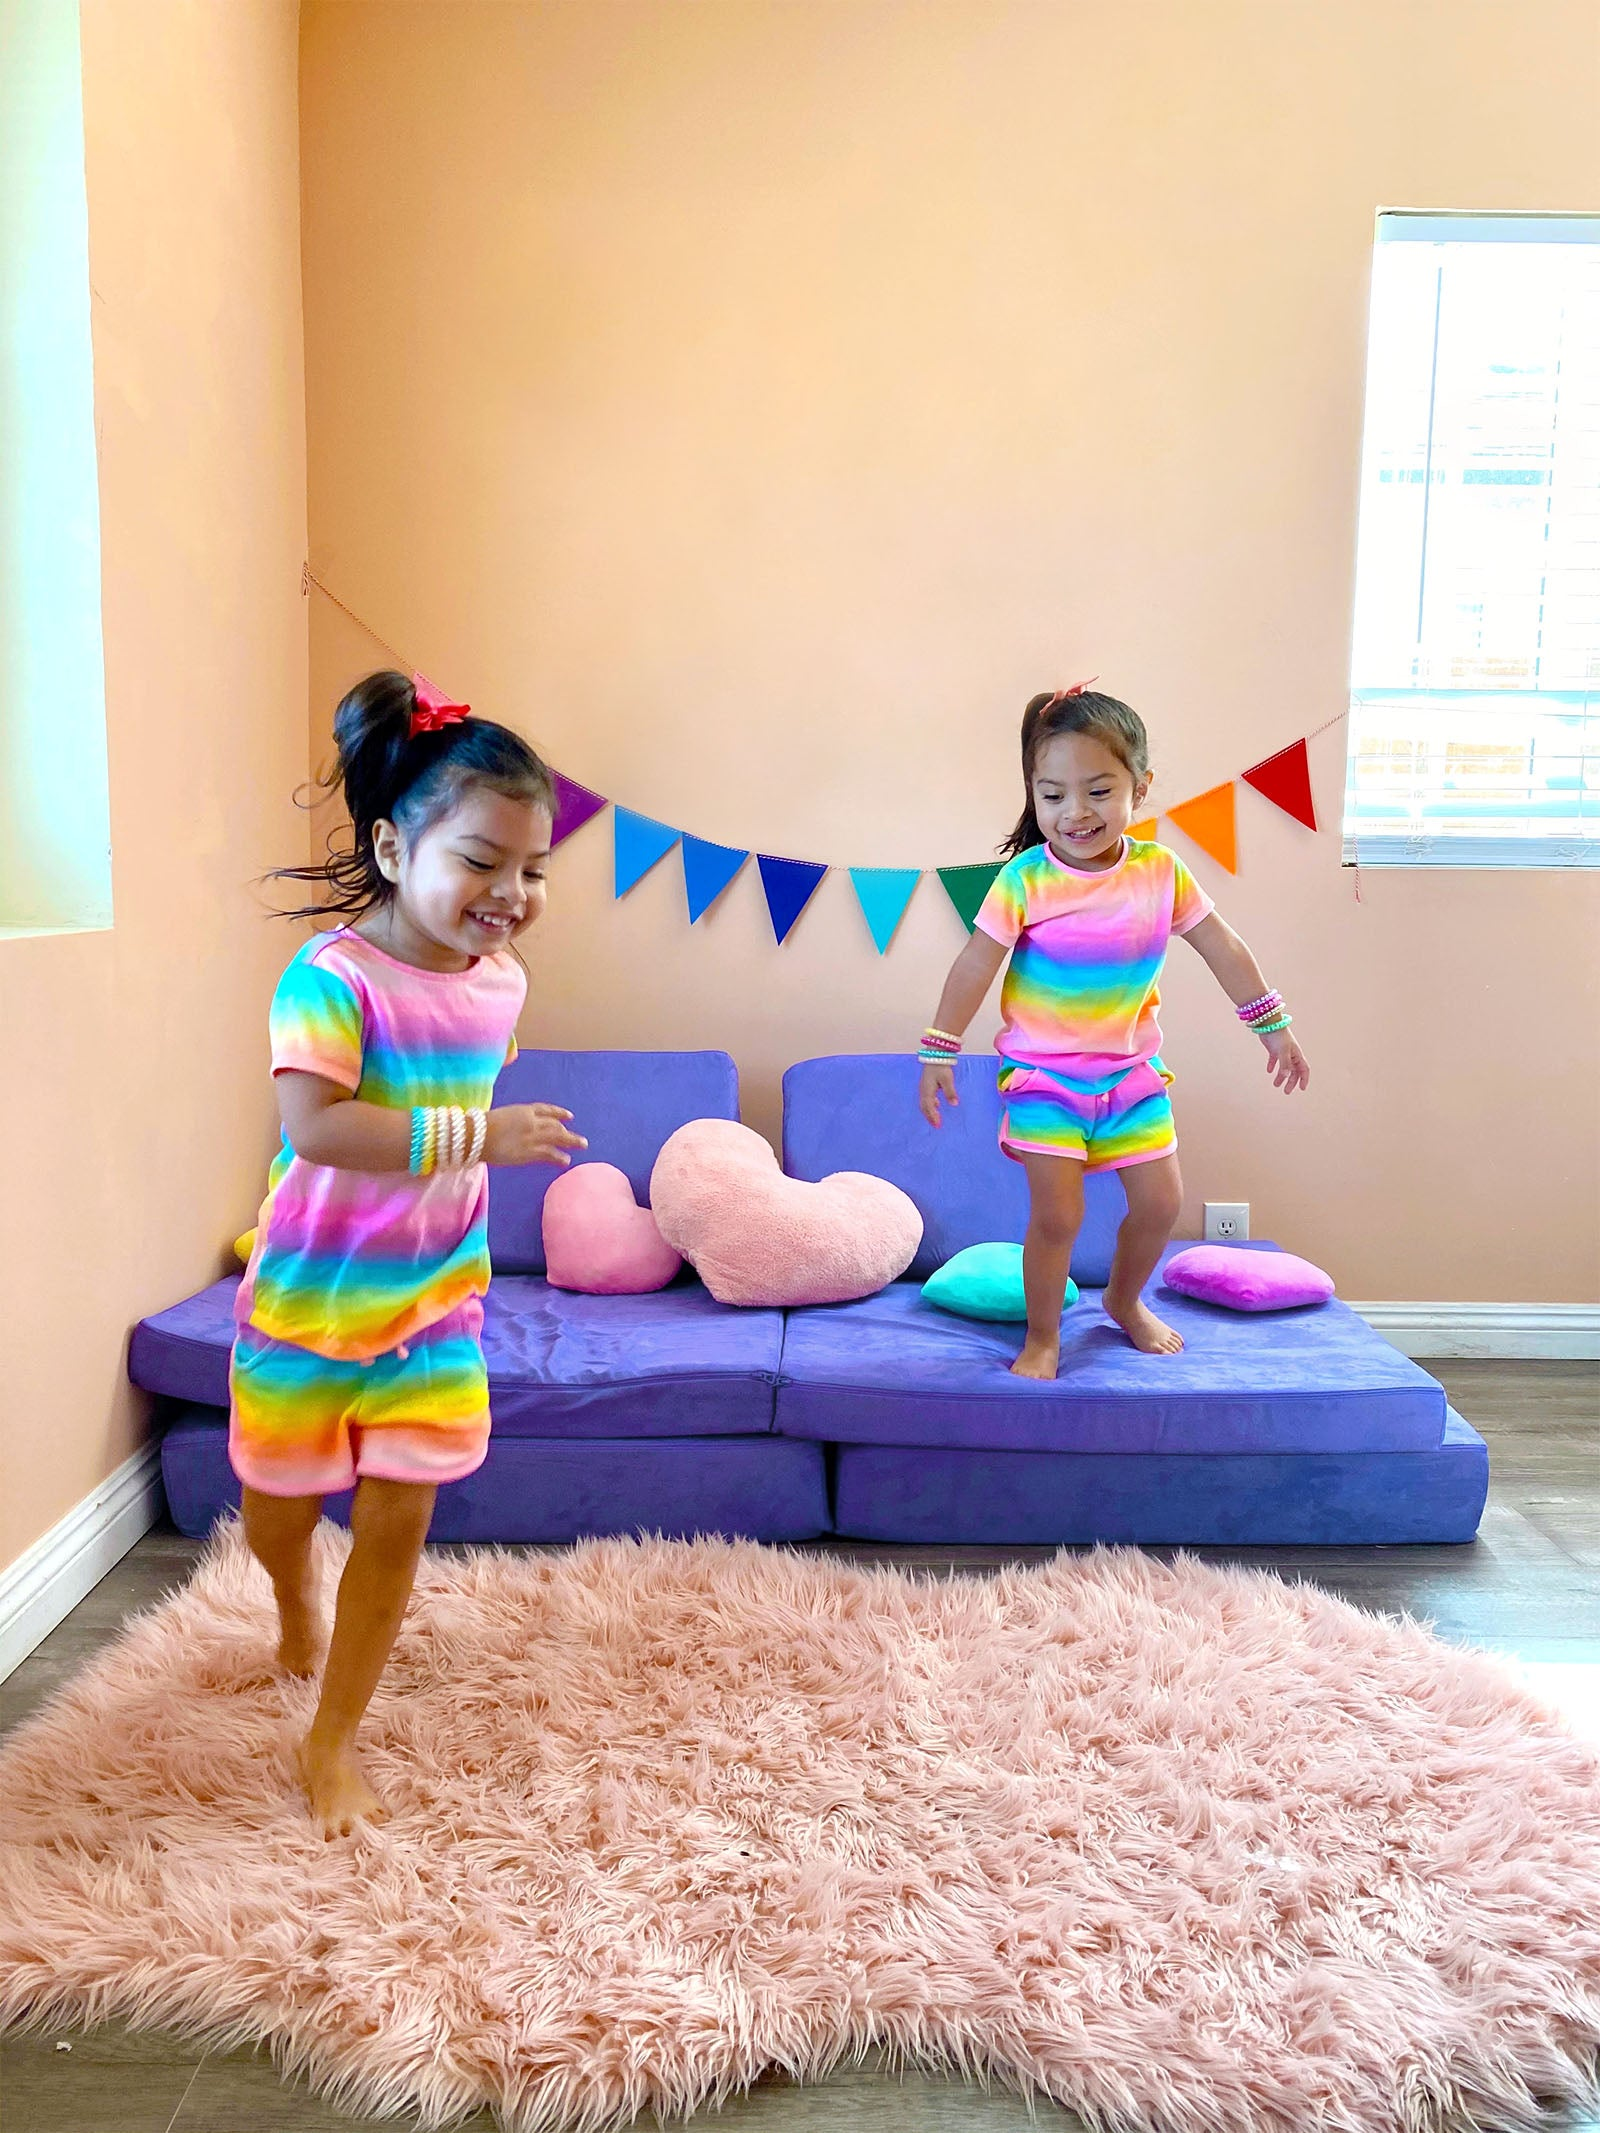 Twins playing with Potion Nugget couch, one running on pink carpet, one standing on couch